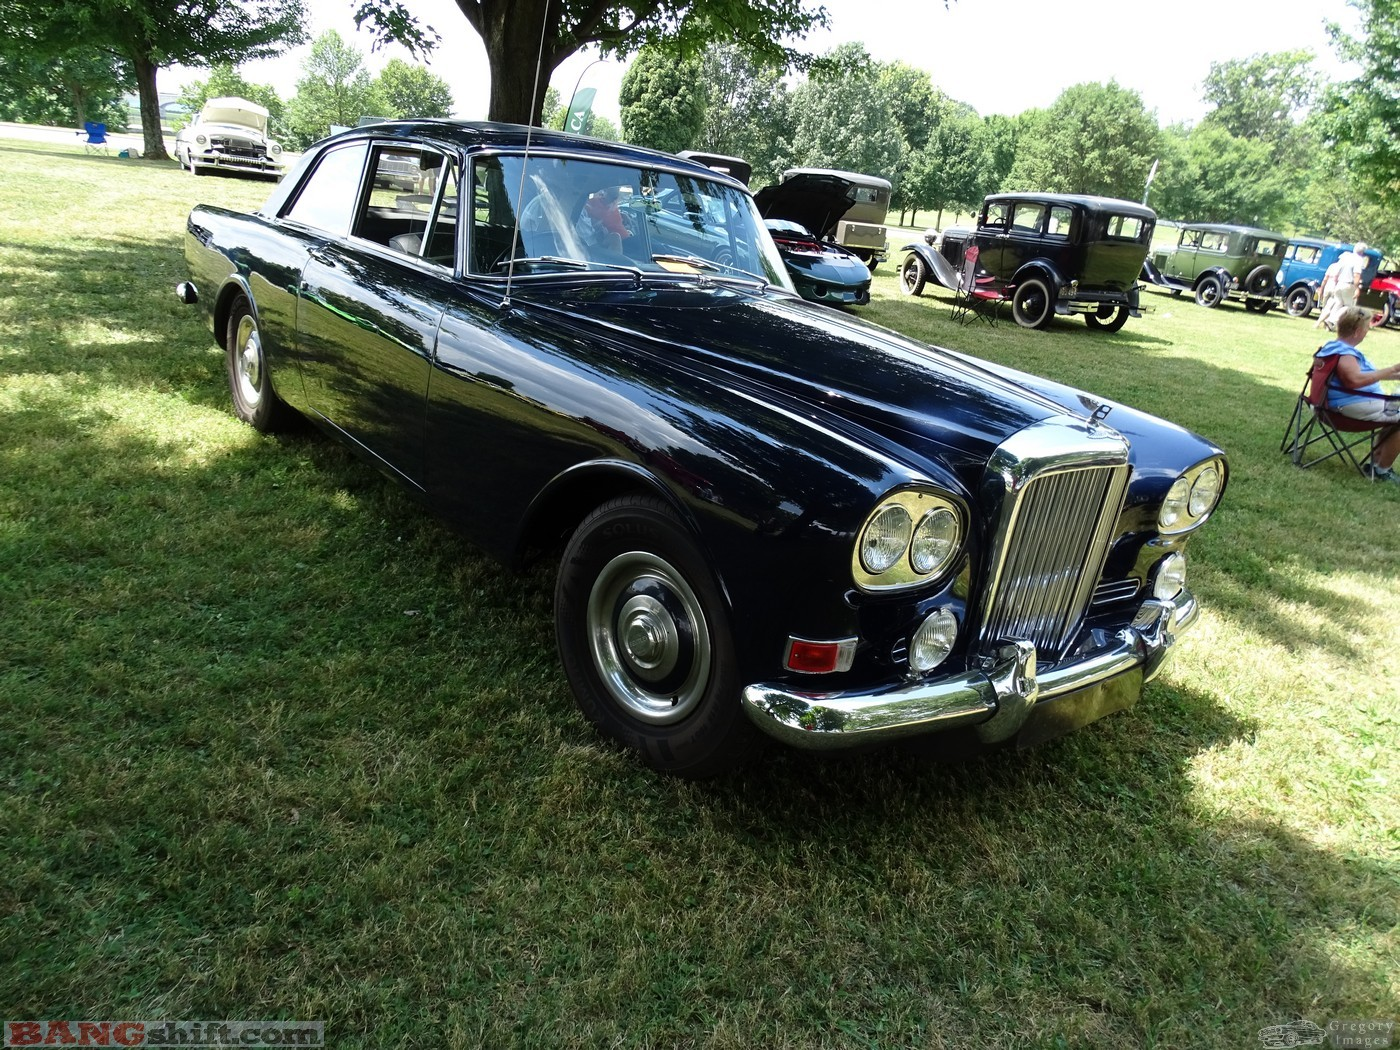 2019 Kneeland Concours Photo Coverage: The Best Of The Rest And Some Highly BangShift Approved Stuff!